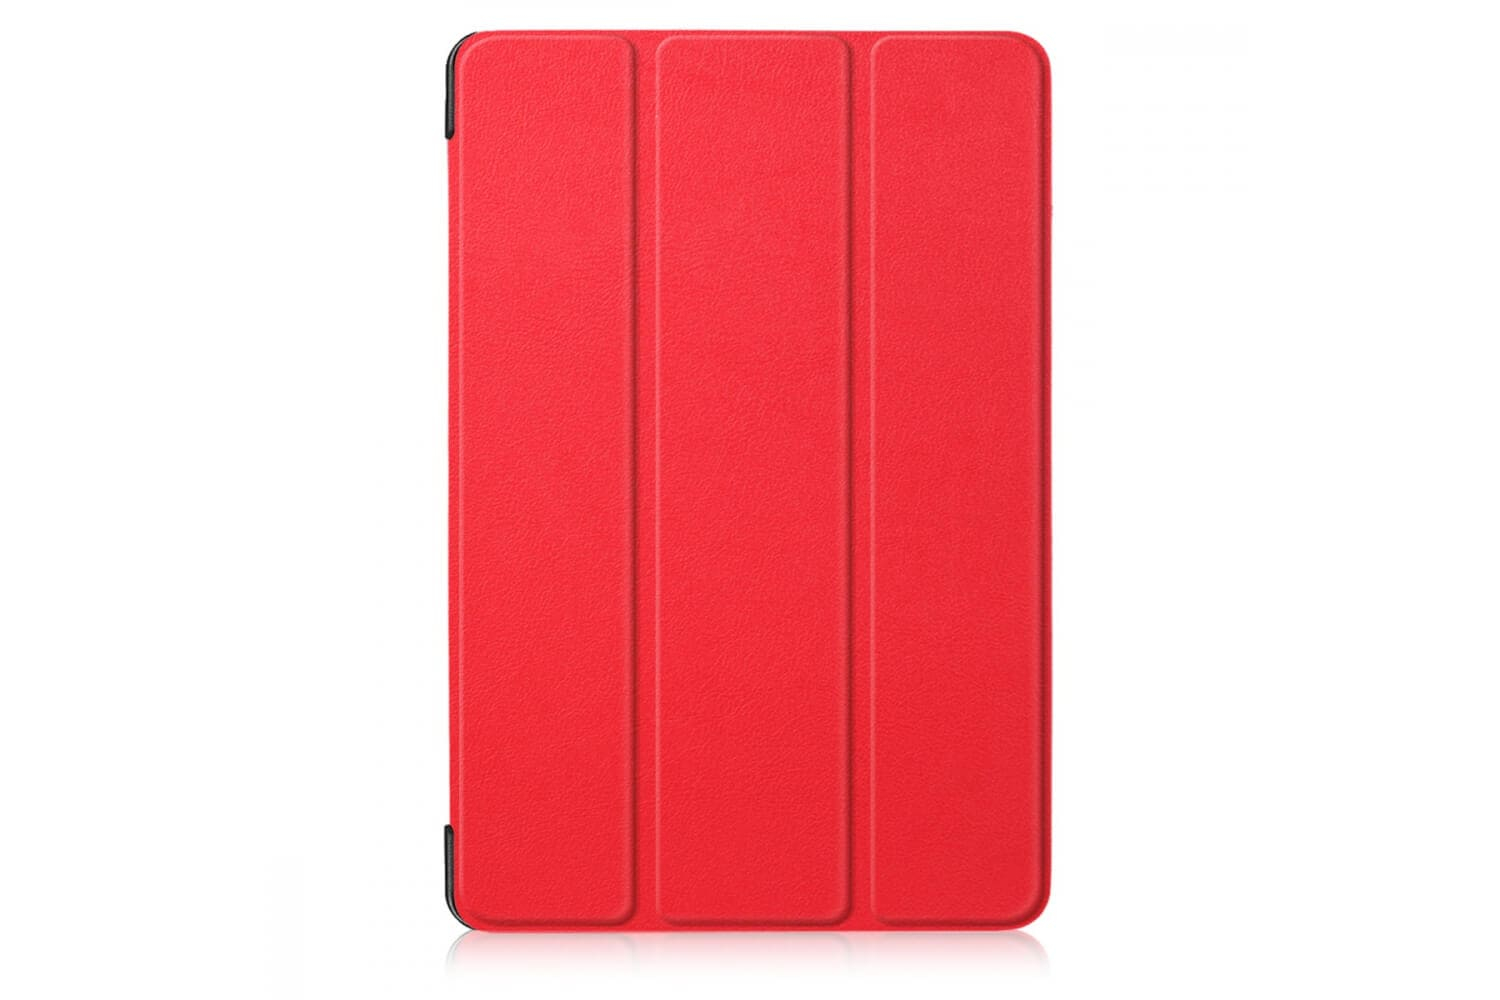 samsung galaxy tab a 10.5 book cover case red